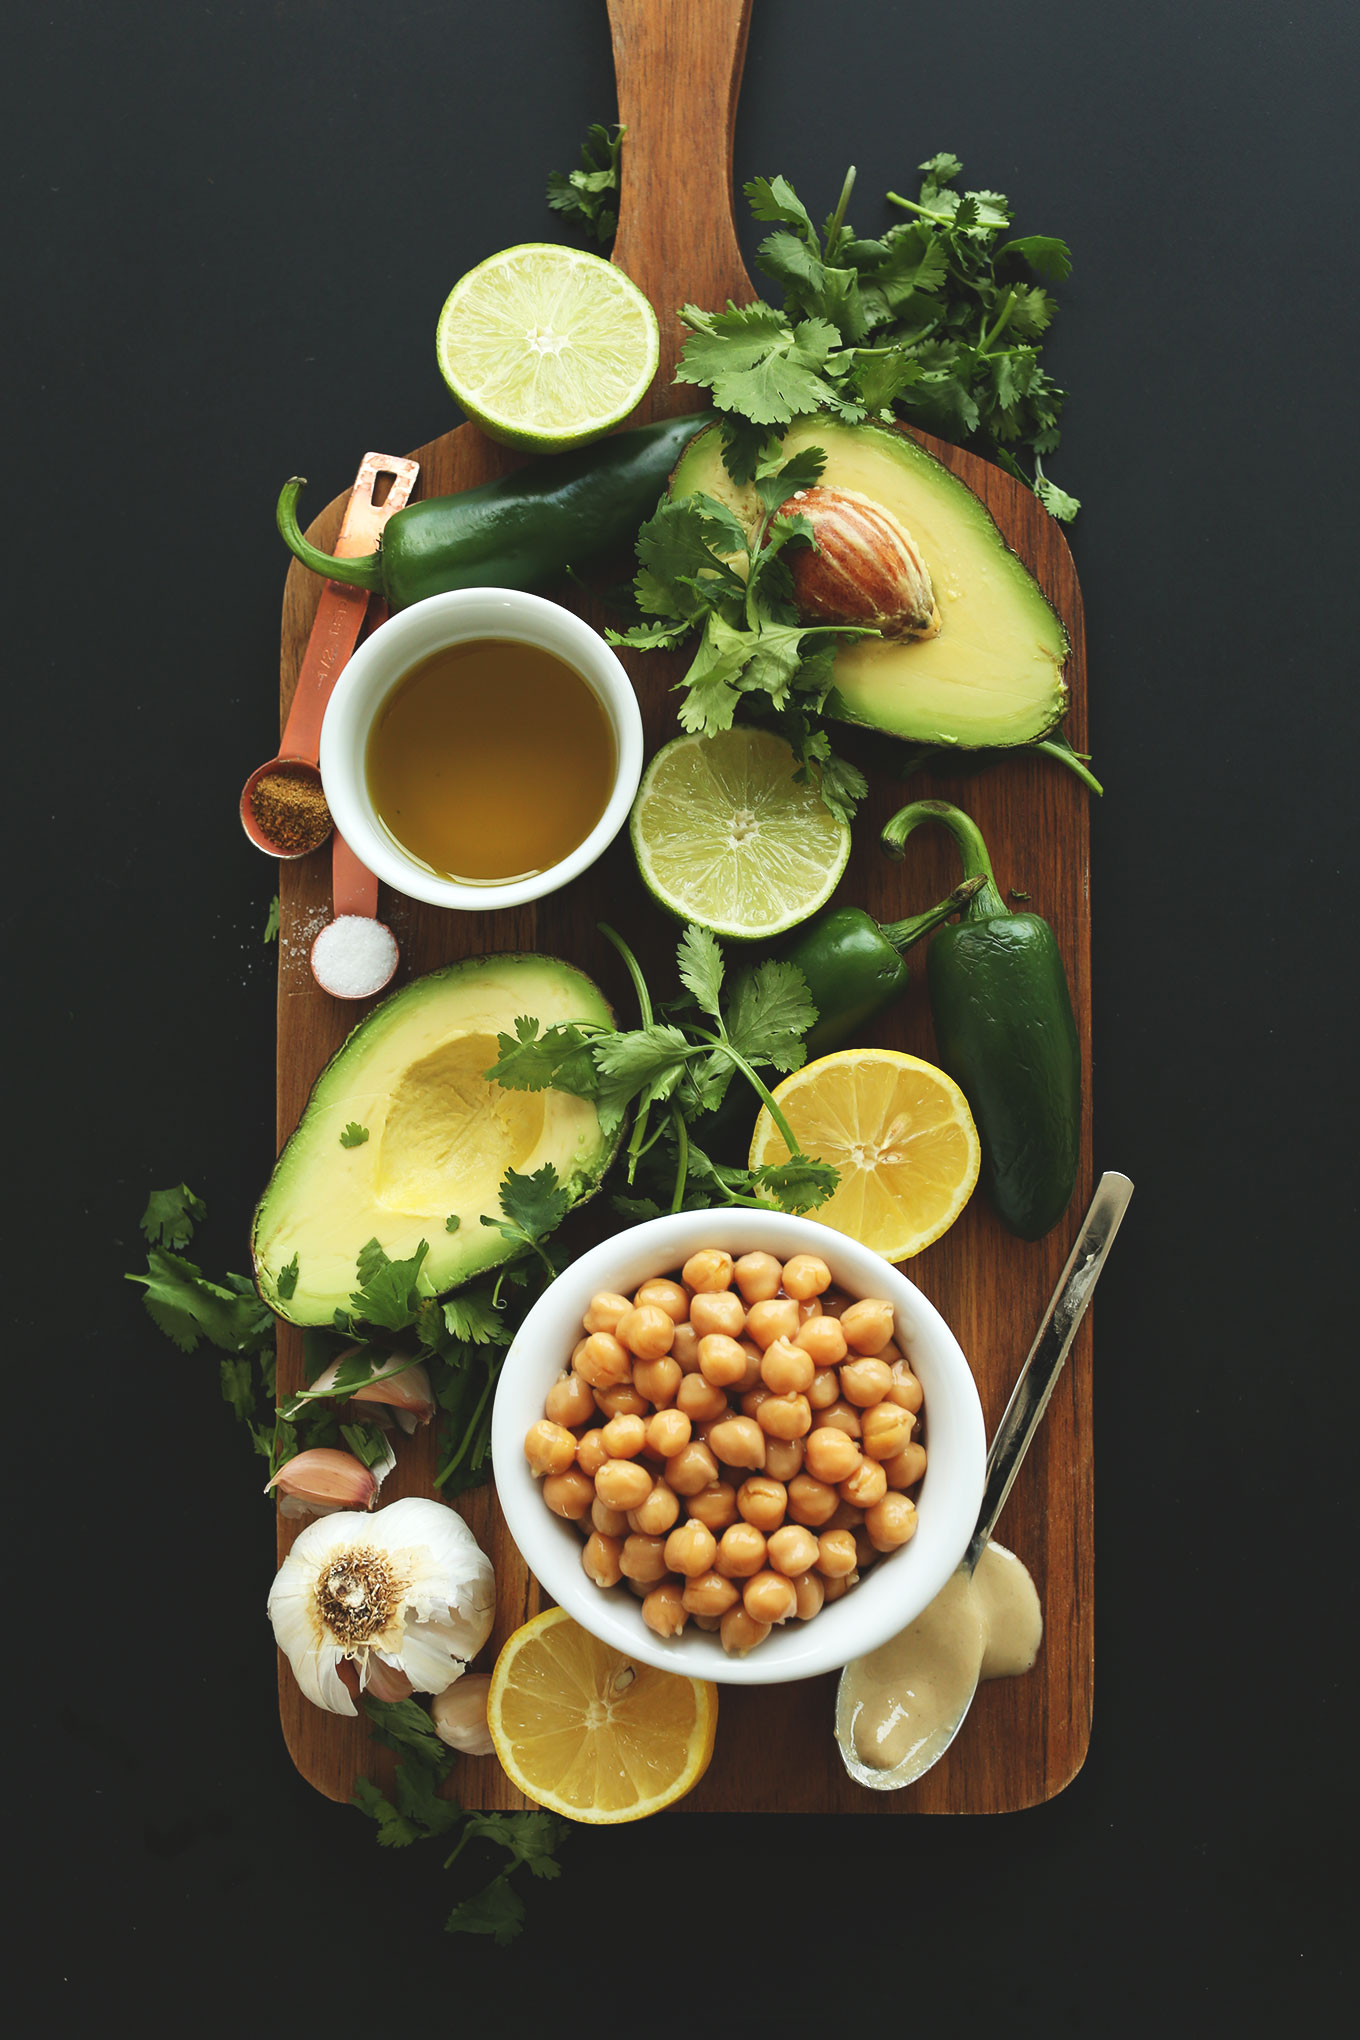 Cutting board with ingredients for making our delicious and healthy Creamy Roasted Jalapeno Hummus